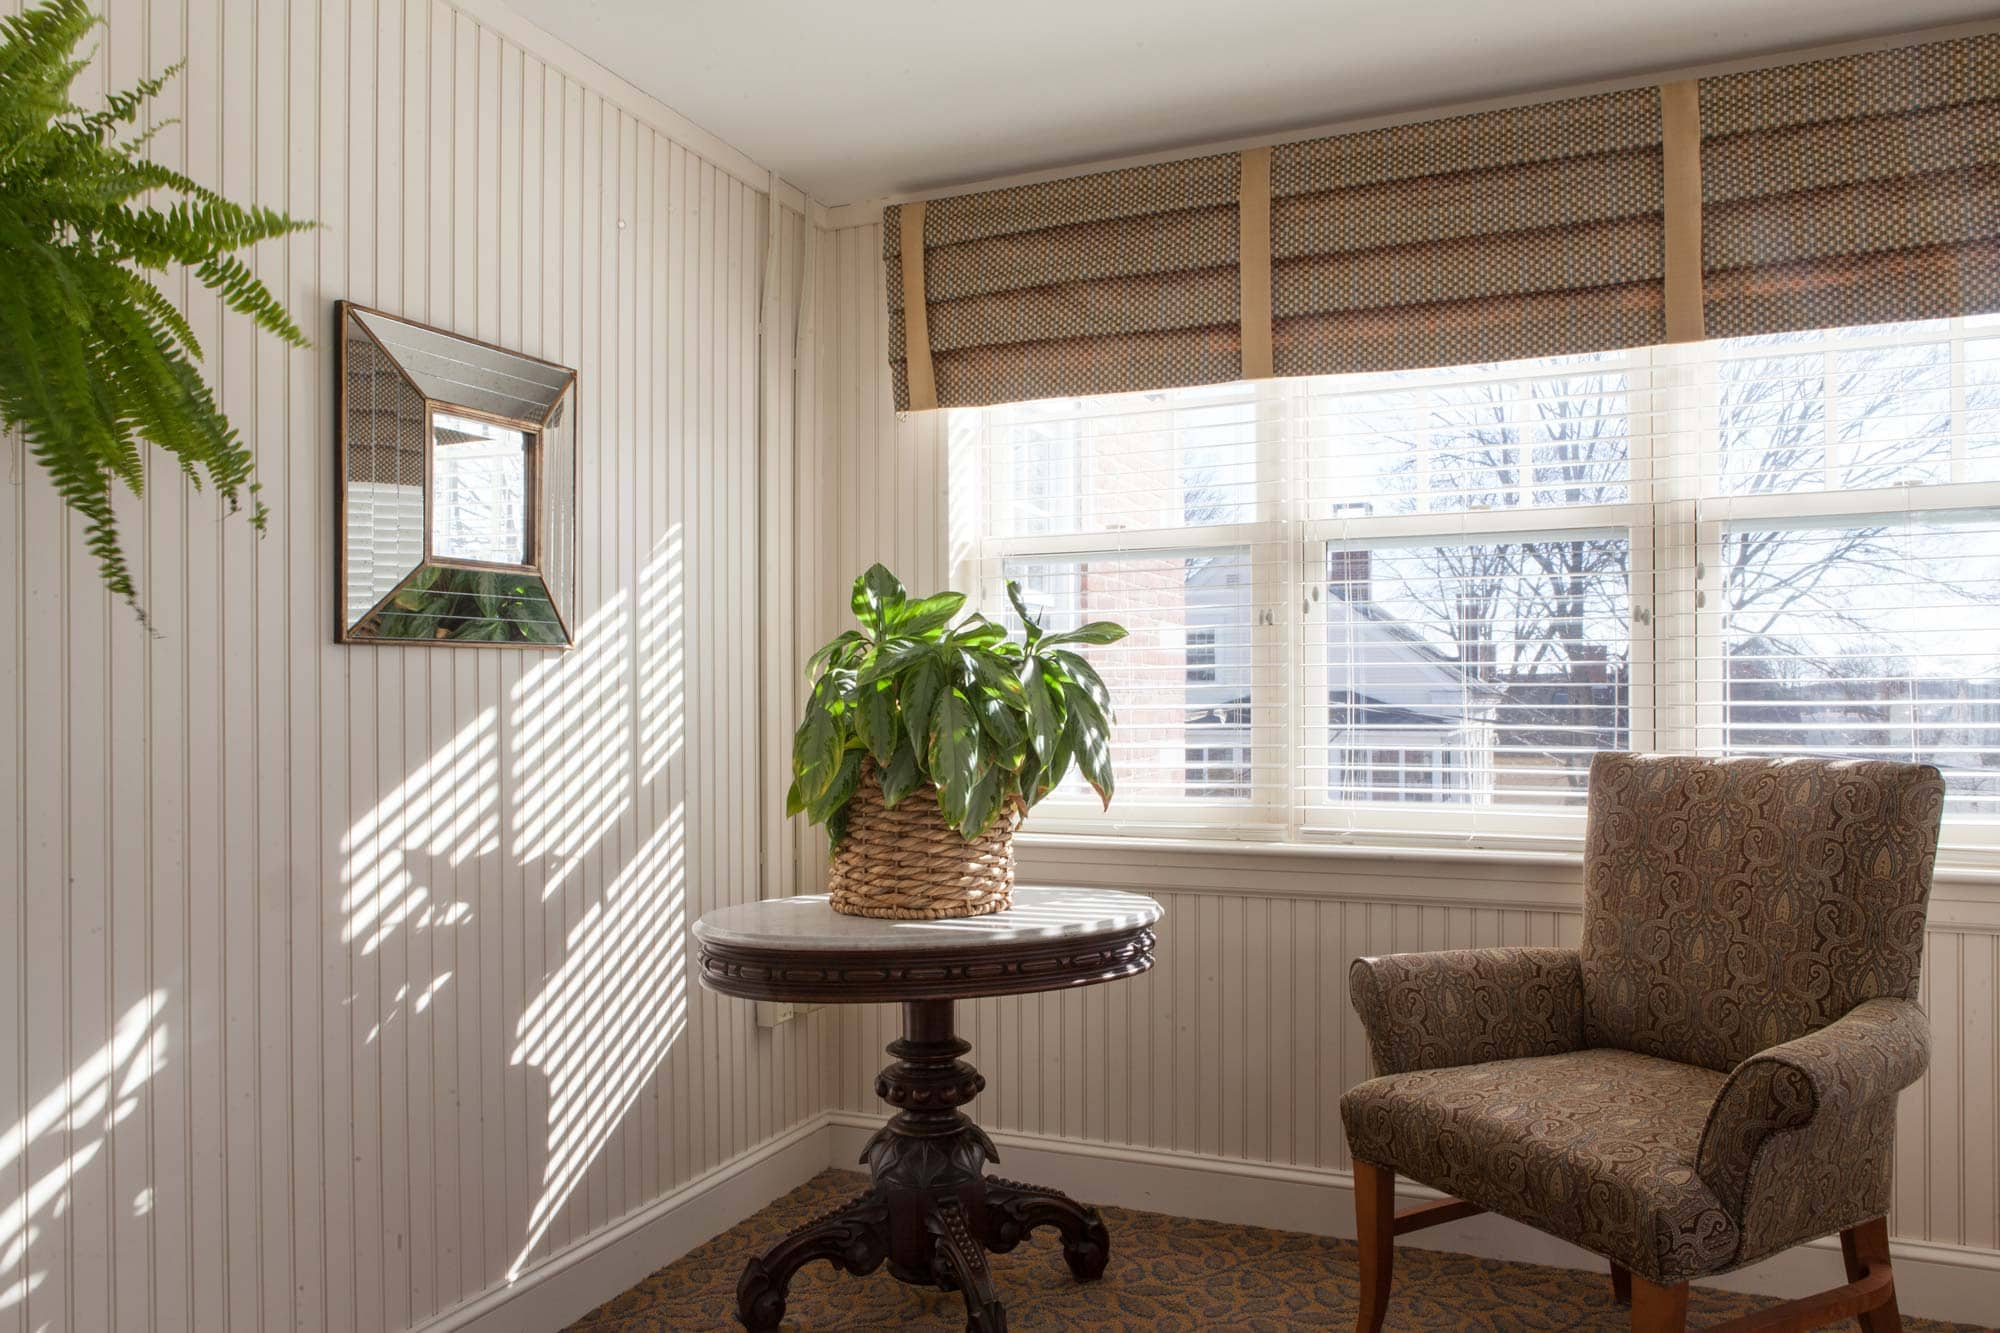 Seating by window in sunroom